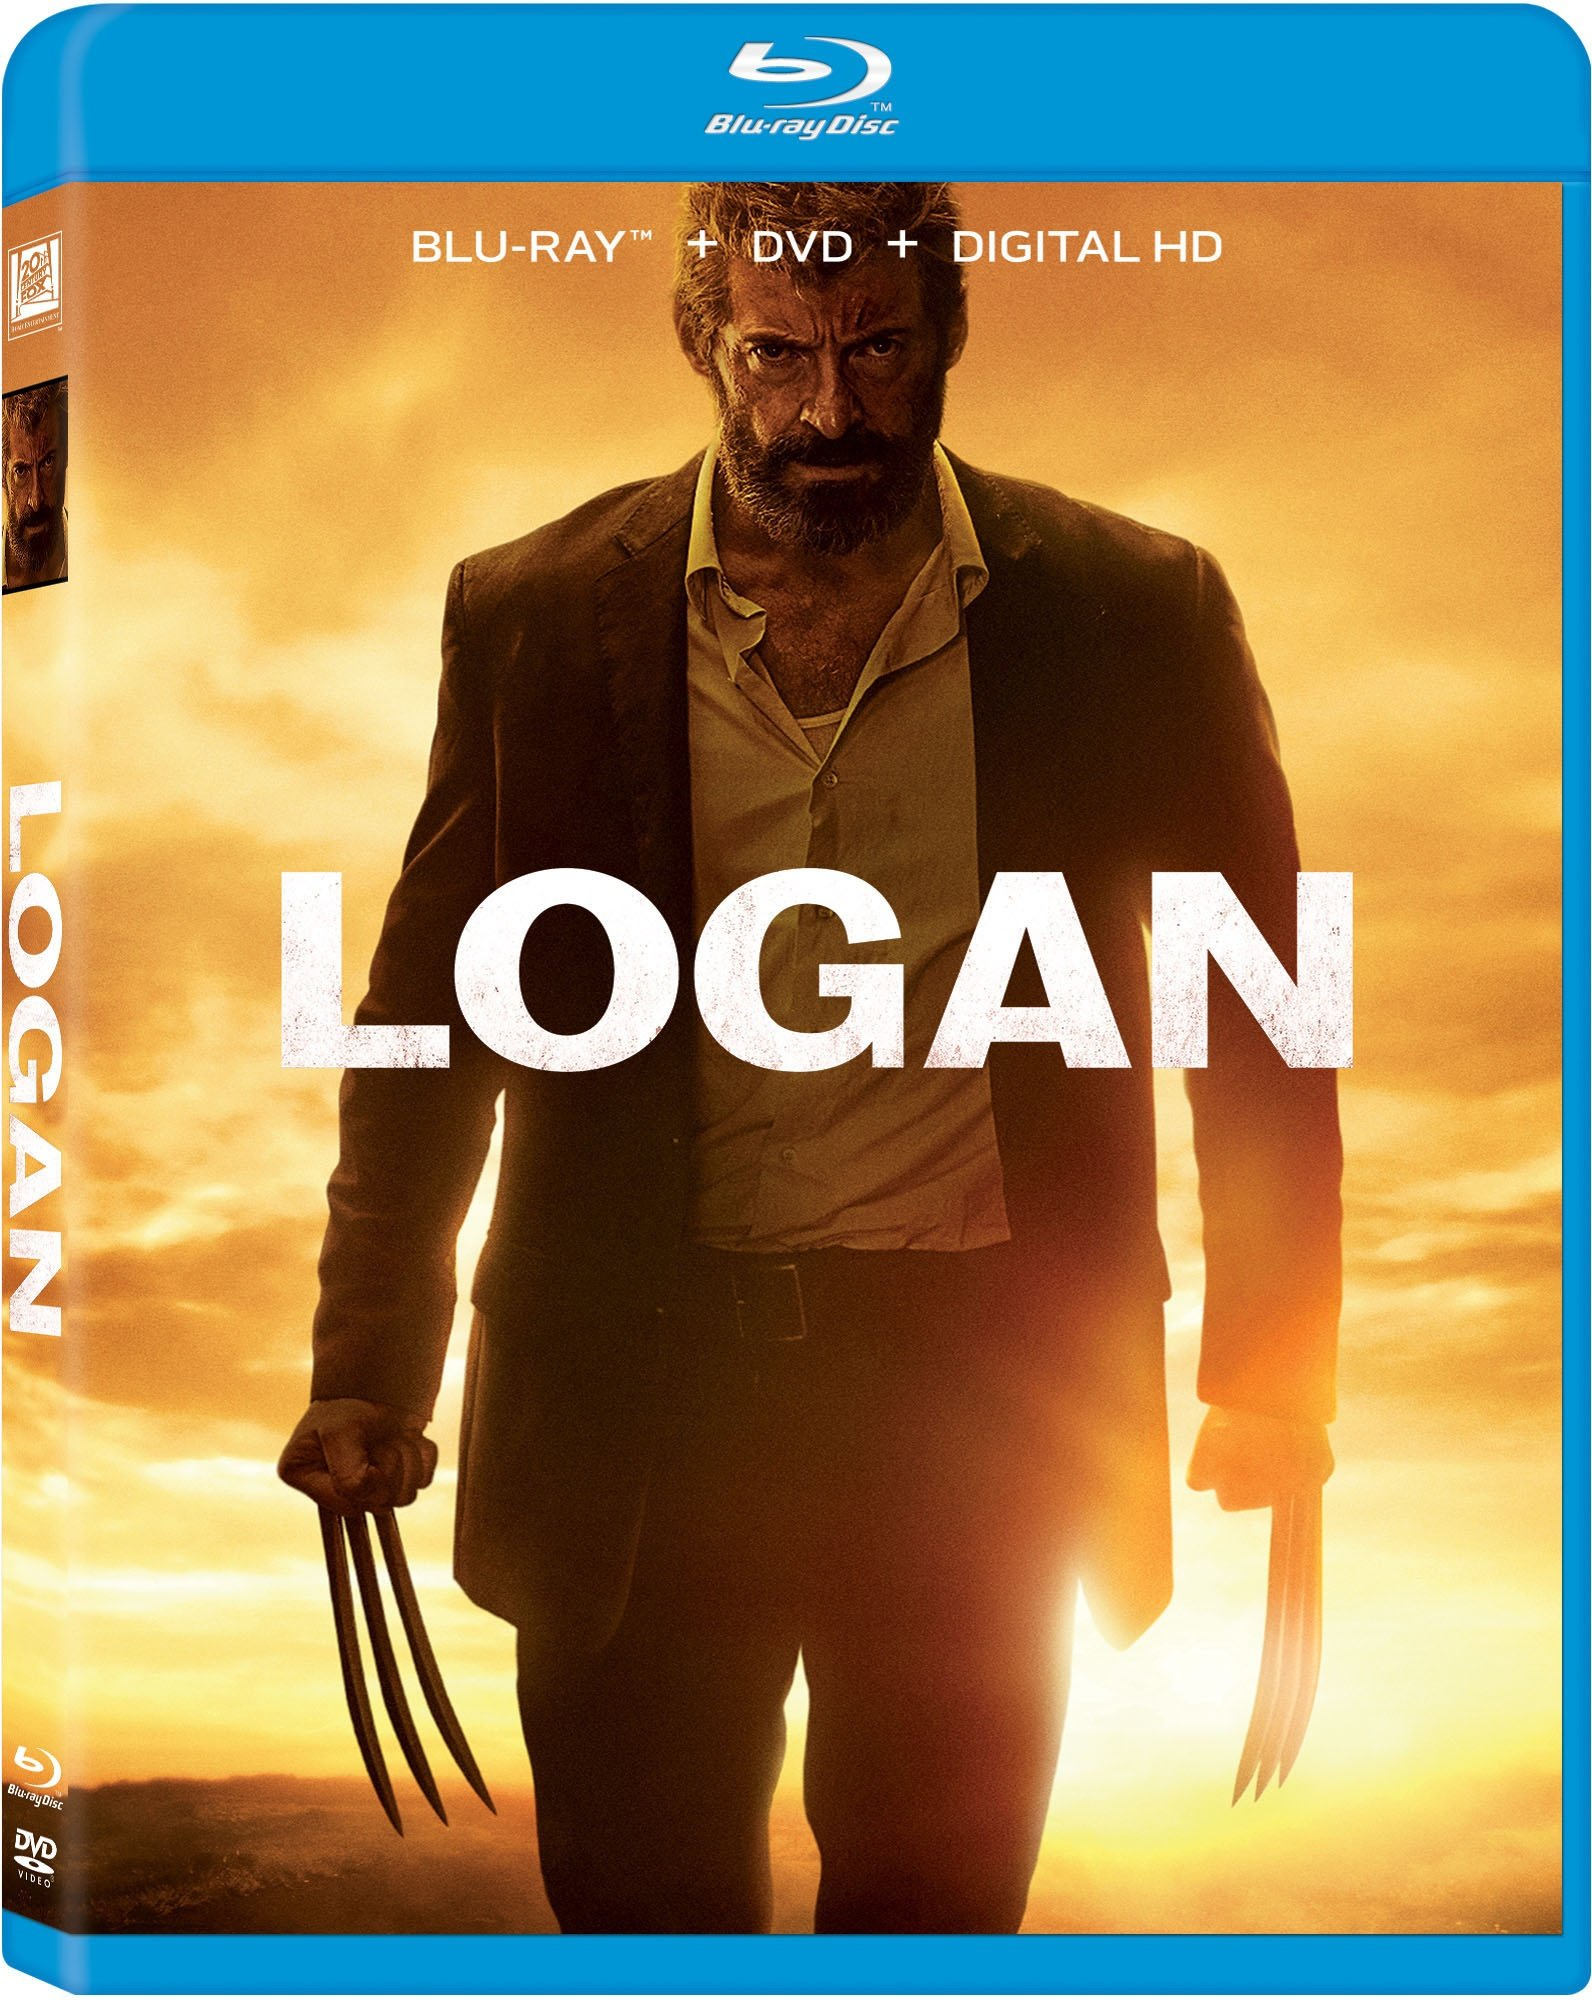 Logan DVD Release Date May 23 2017